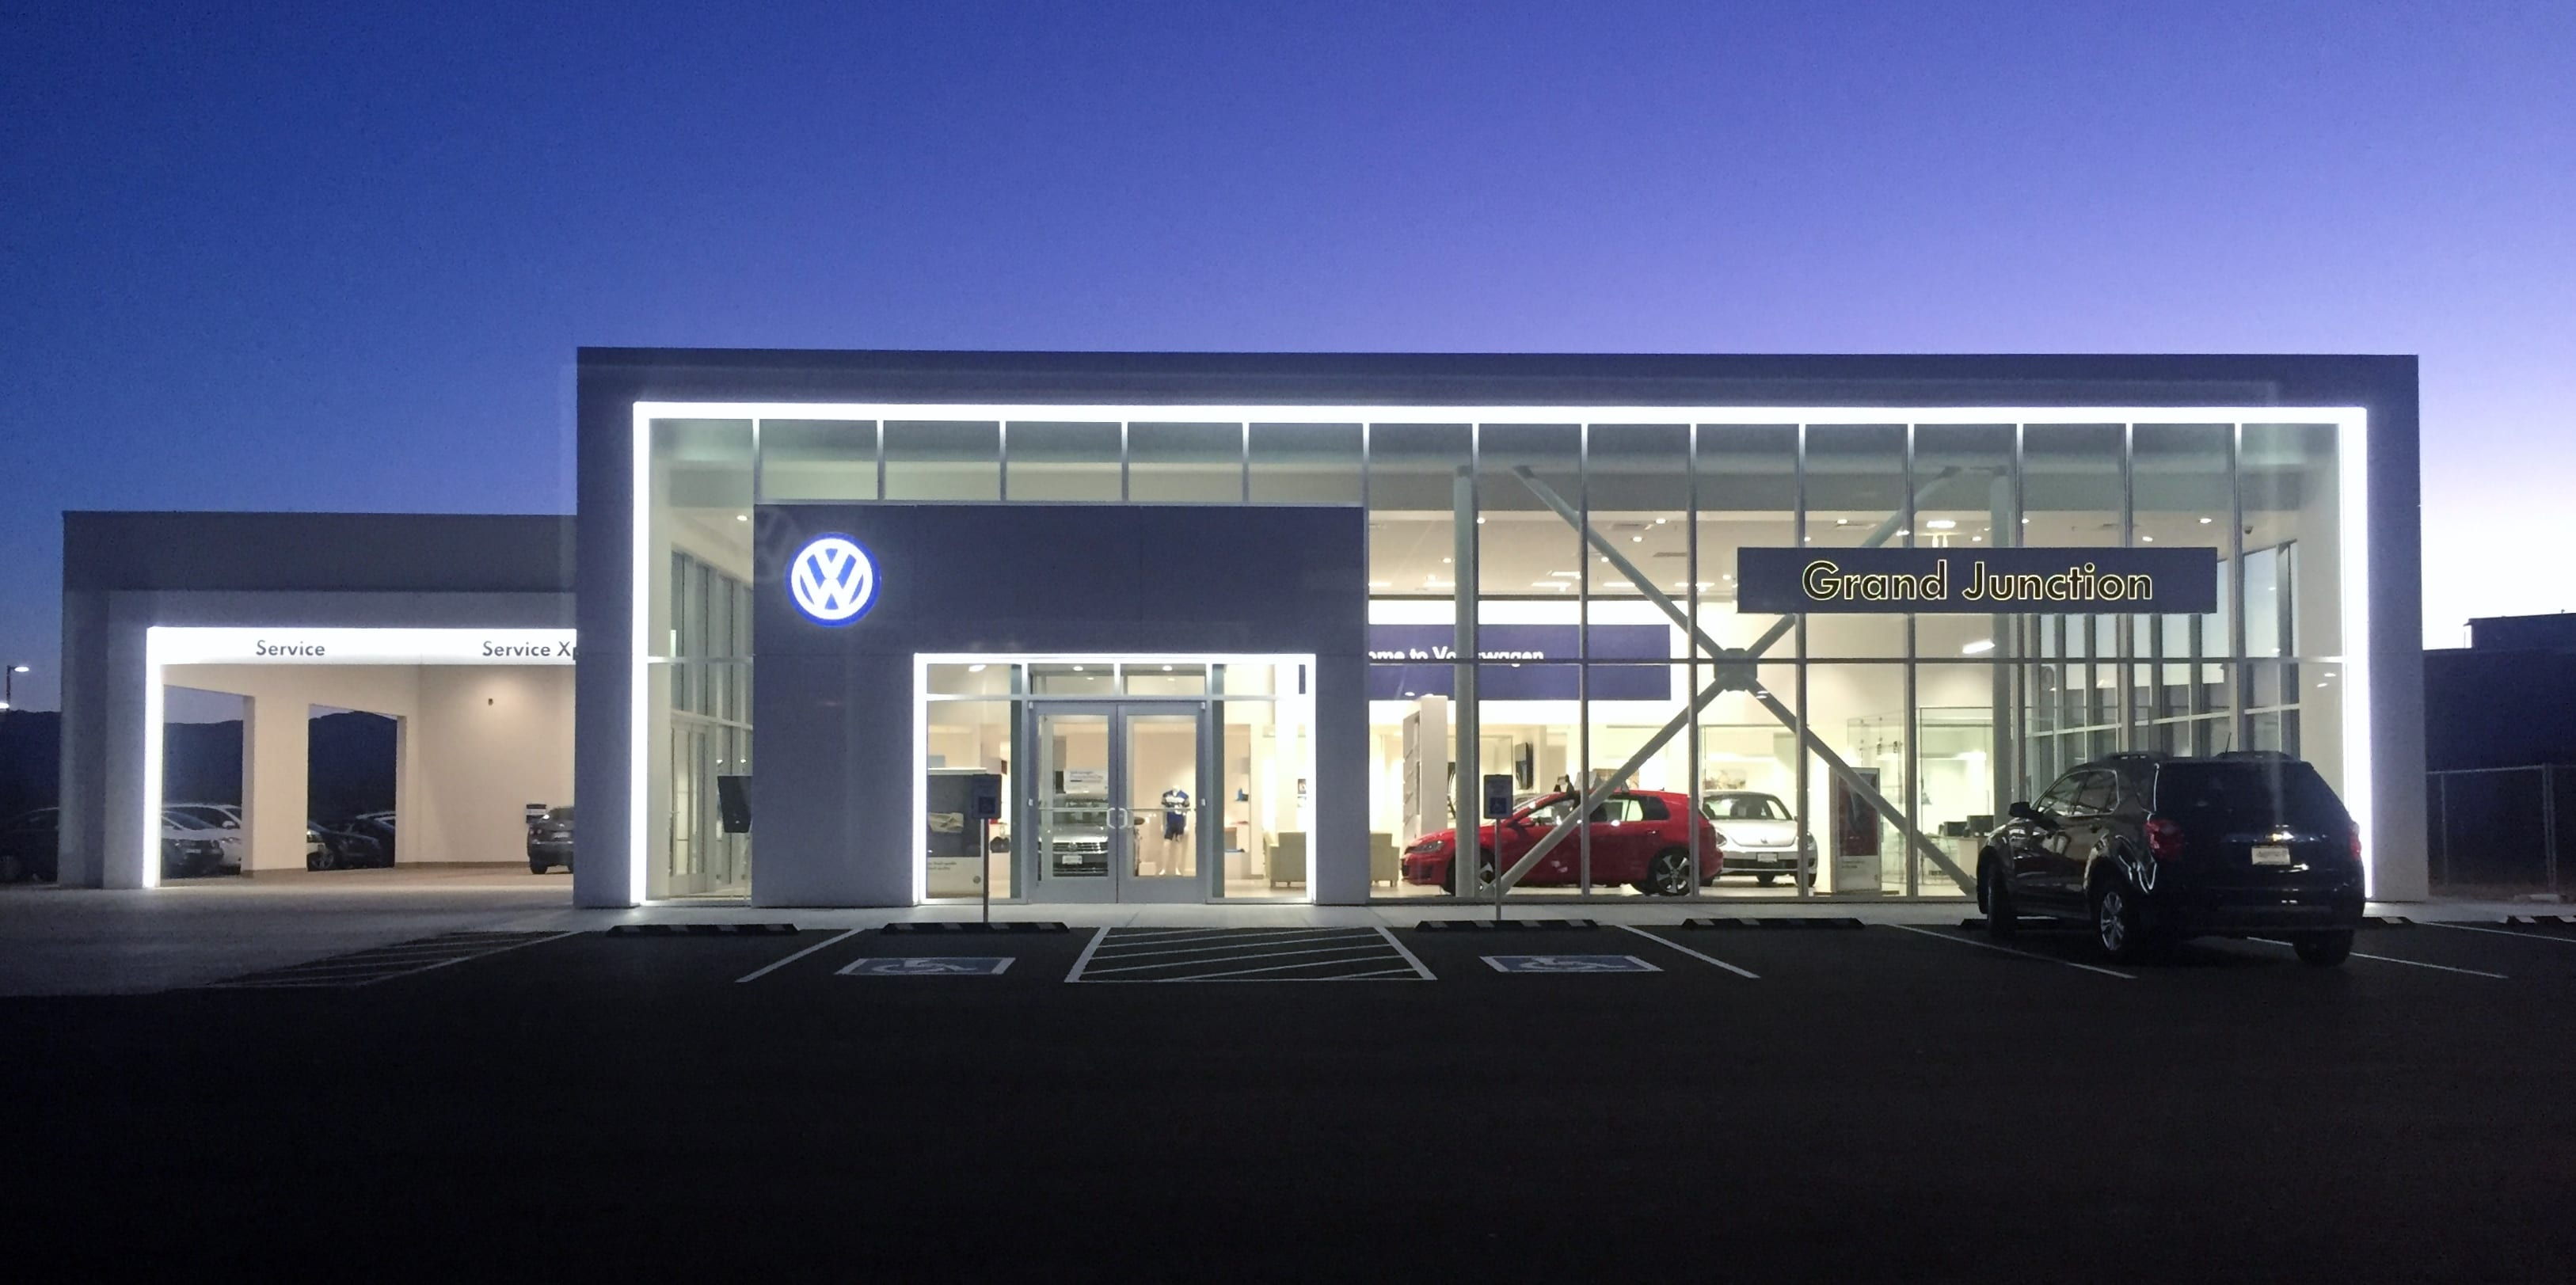 about grand junction volkswagen a volkswagen dealership in grand junction. Black Bedroom Furniture Sets. Home Design Ideas